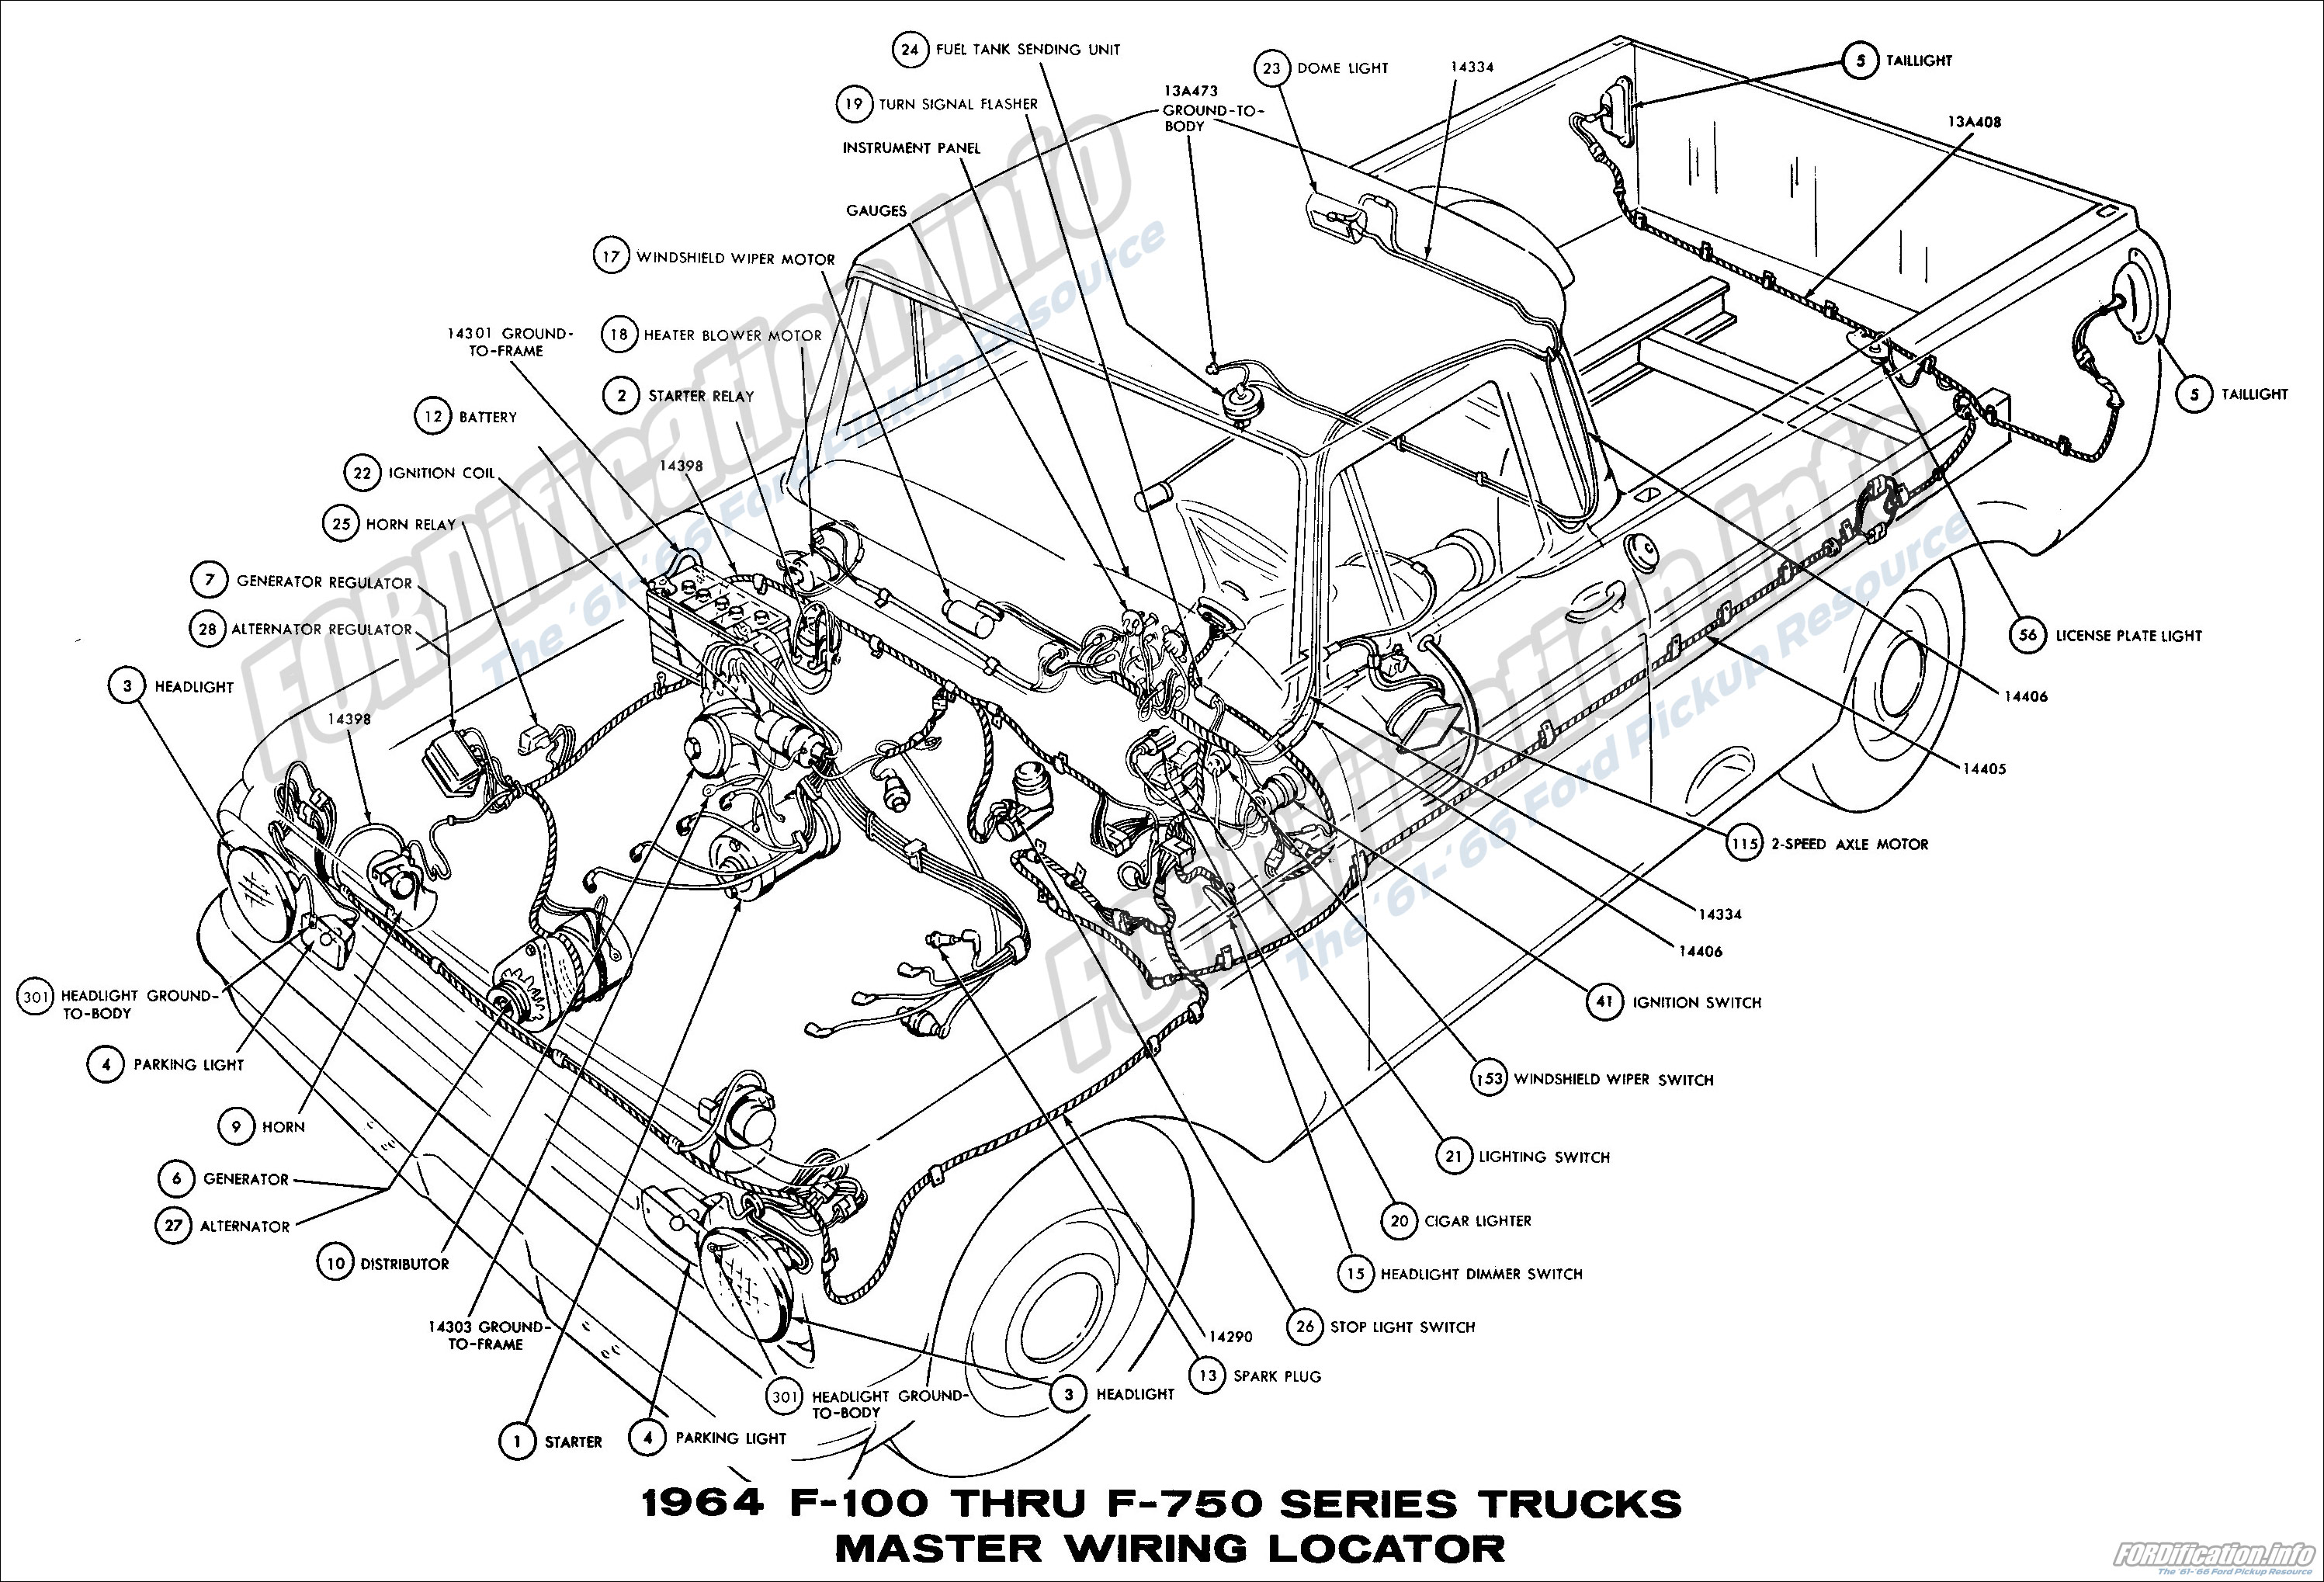 1964 f100 brake light diagram